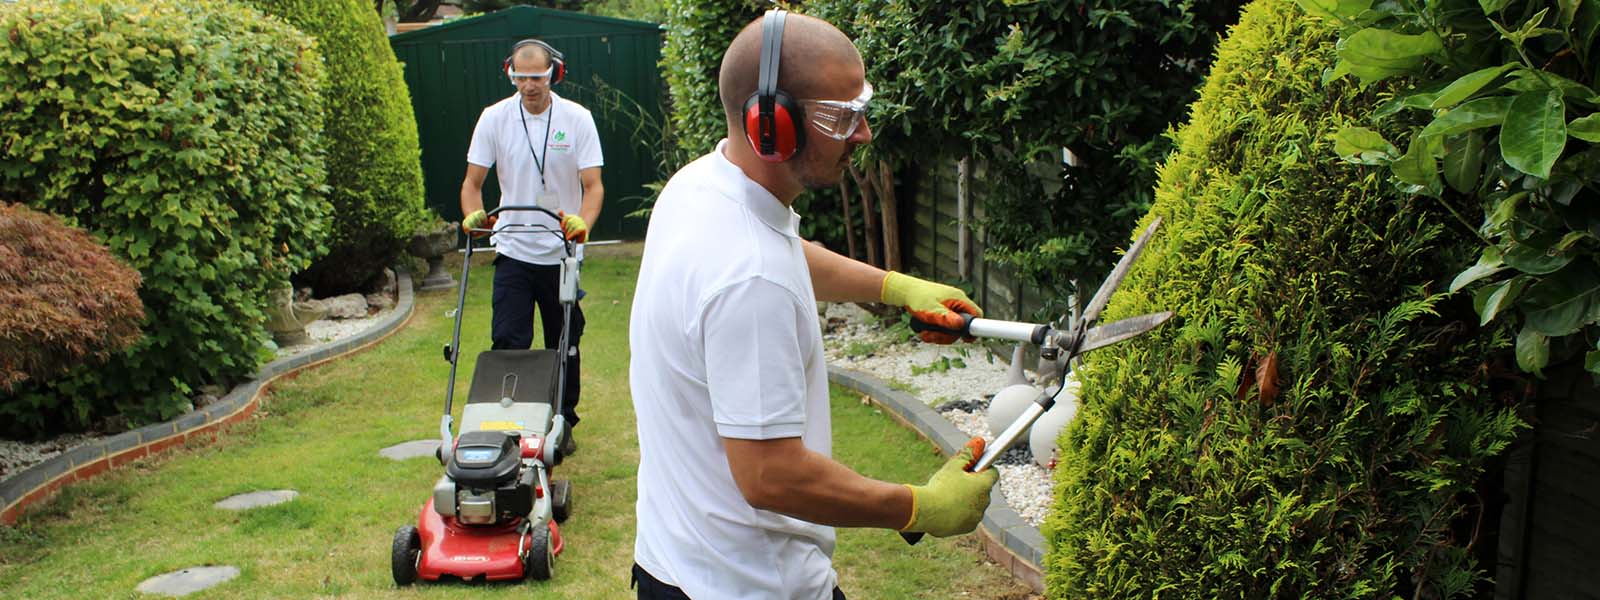 Landscaping Gardening Services Landscaping and gardening services in london gardeners maintenance landscaping and gardening services in london workwithnaturefo